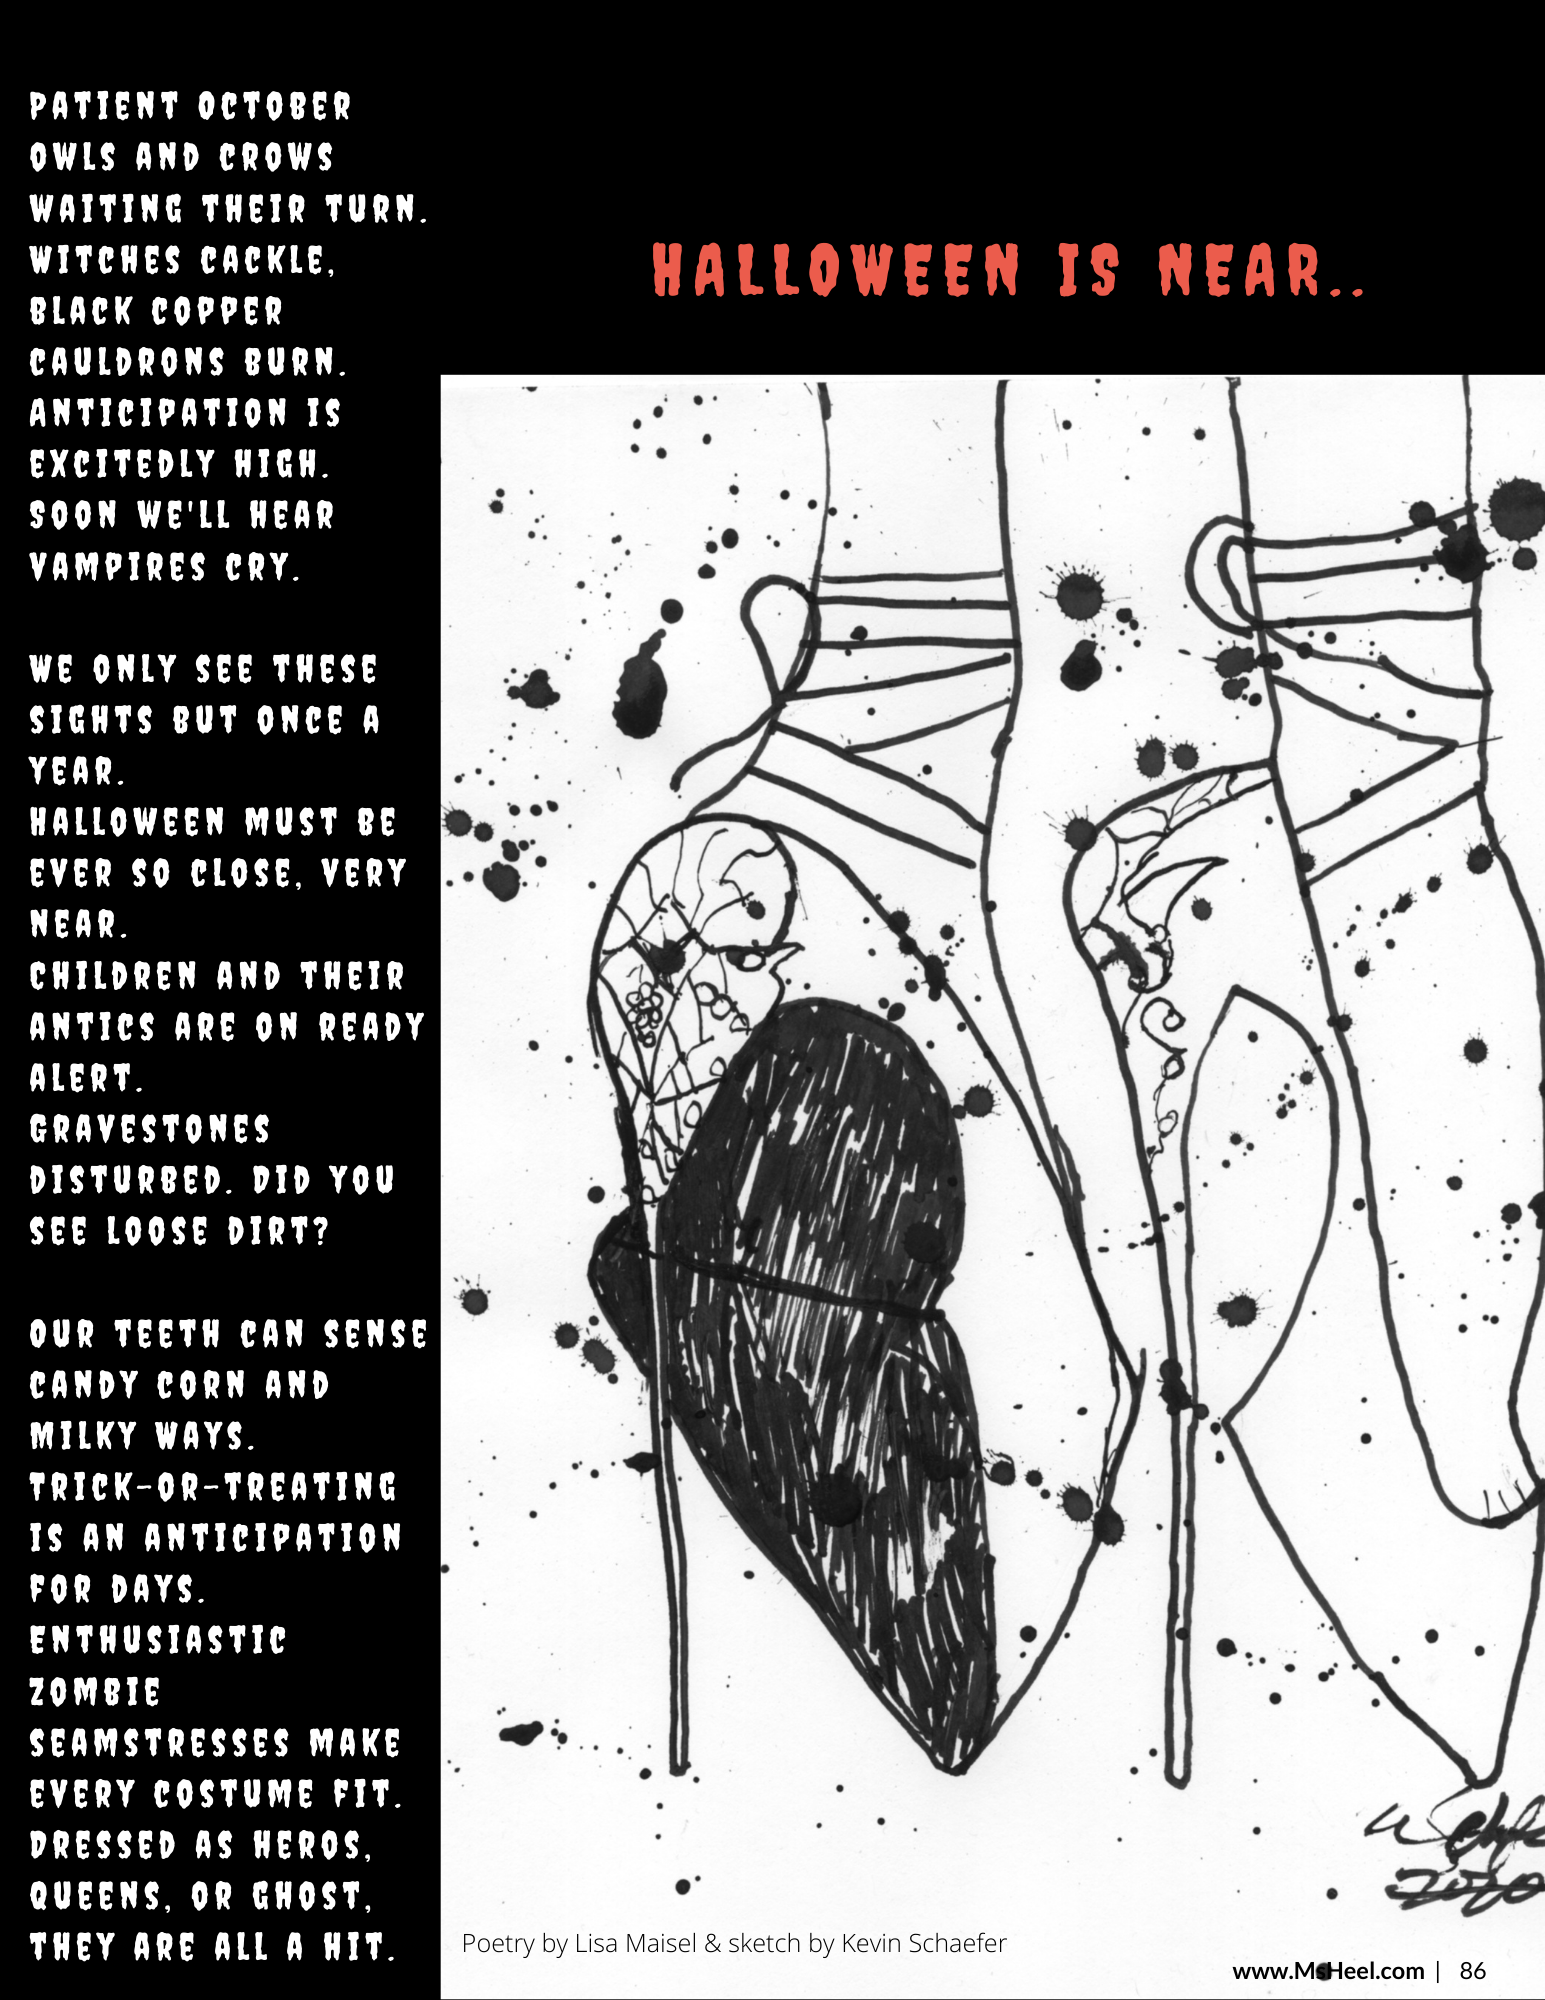 Halloween is near...have no fear. A Halloween poem